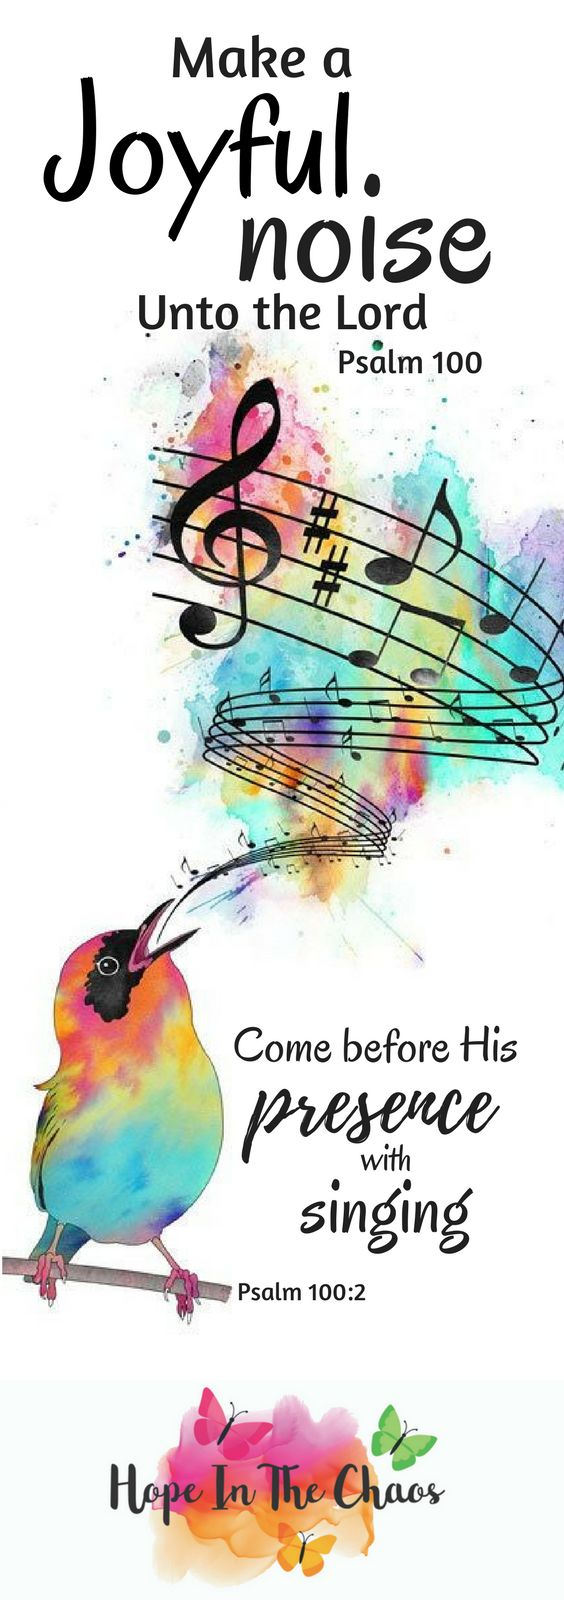 Make a joyful noise unto the Lord, and come before His presence with singing. What a beautiful picture of the relationship He wishes to have with us.